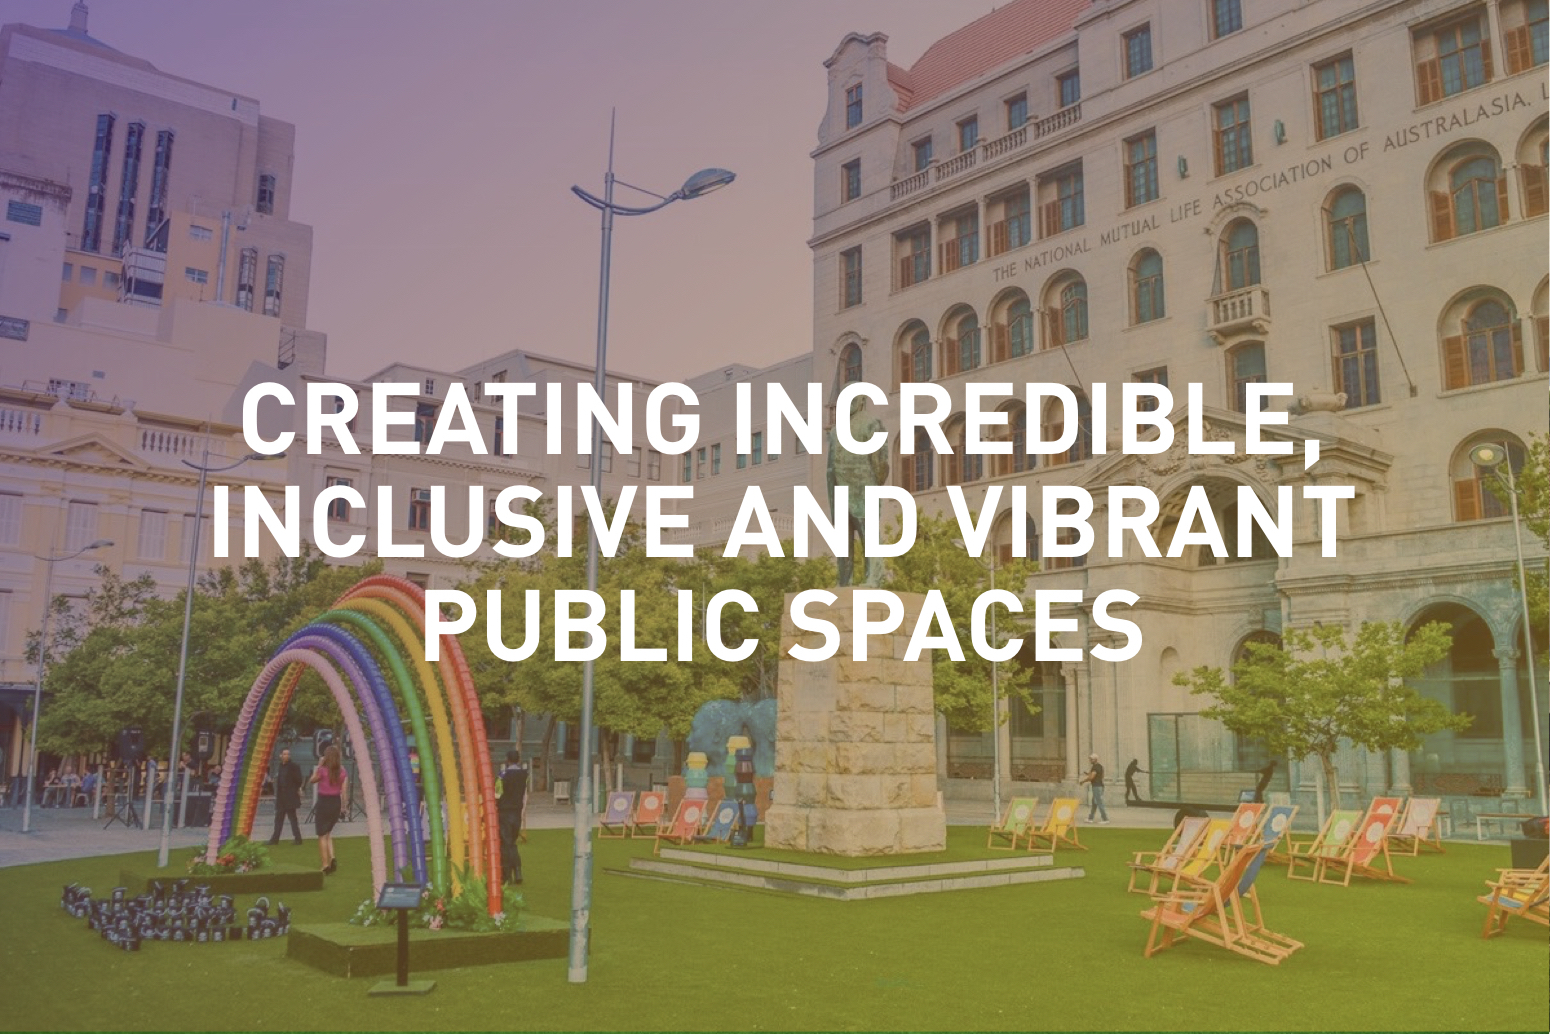 Transforming our parks, plazas, squares and broader public realm as places for all.